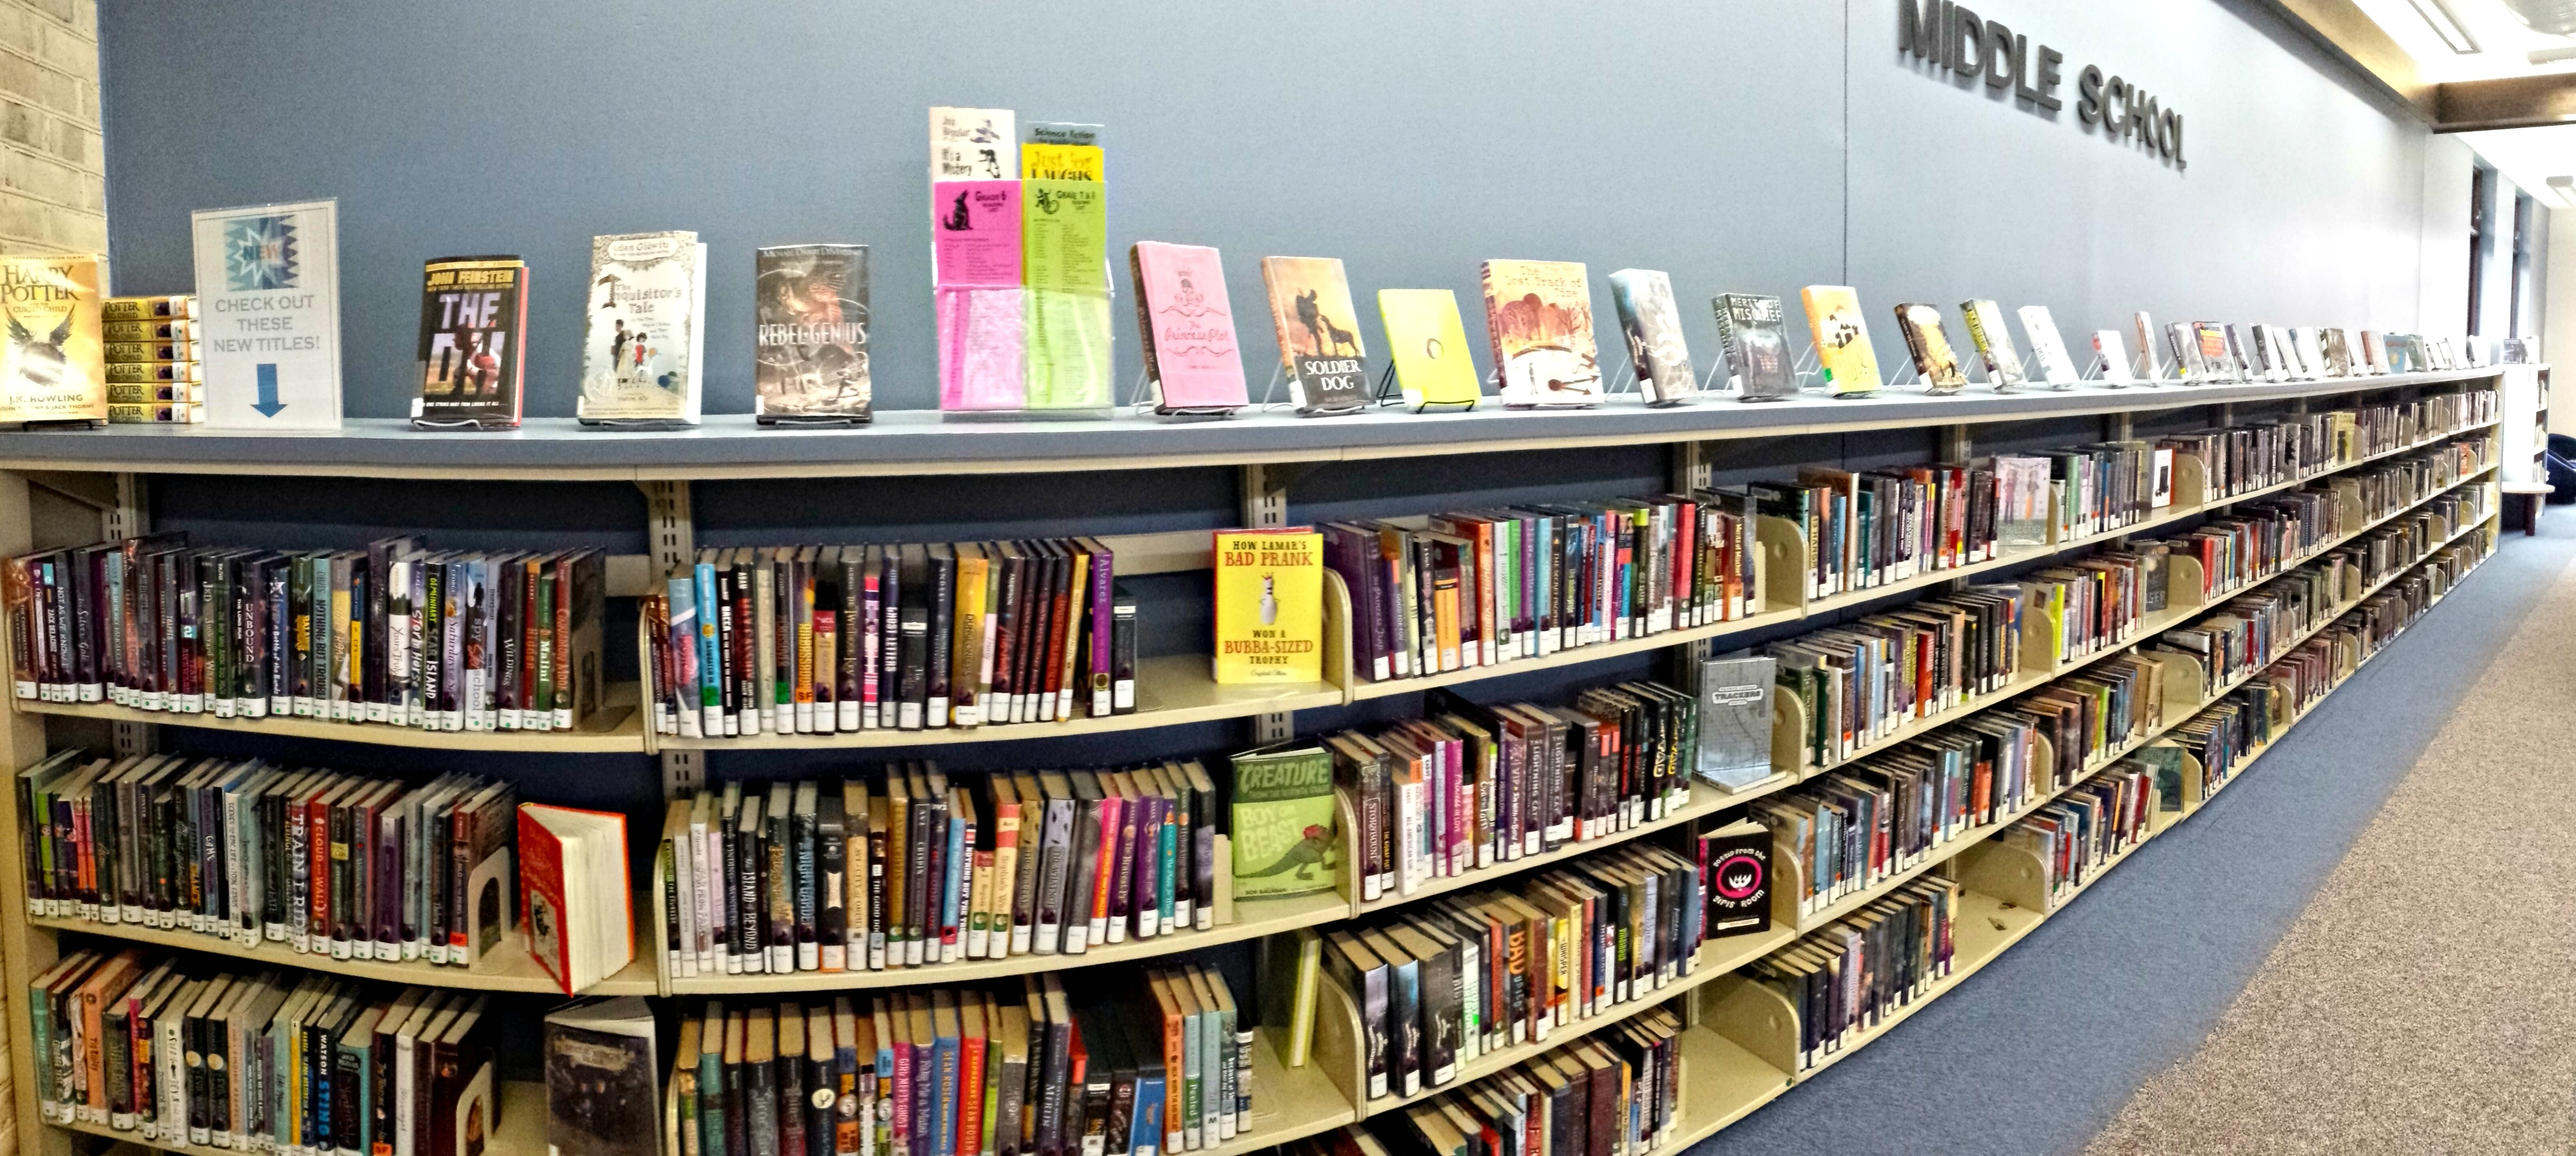 Dedicated Middle School Collections in the Public Library: A New Trend?